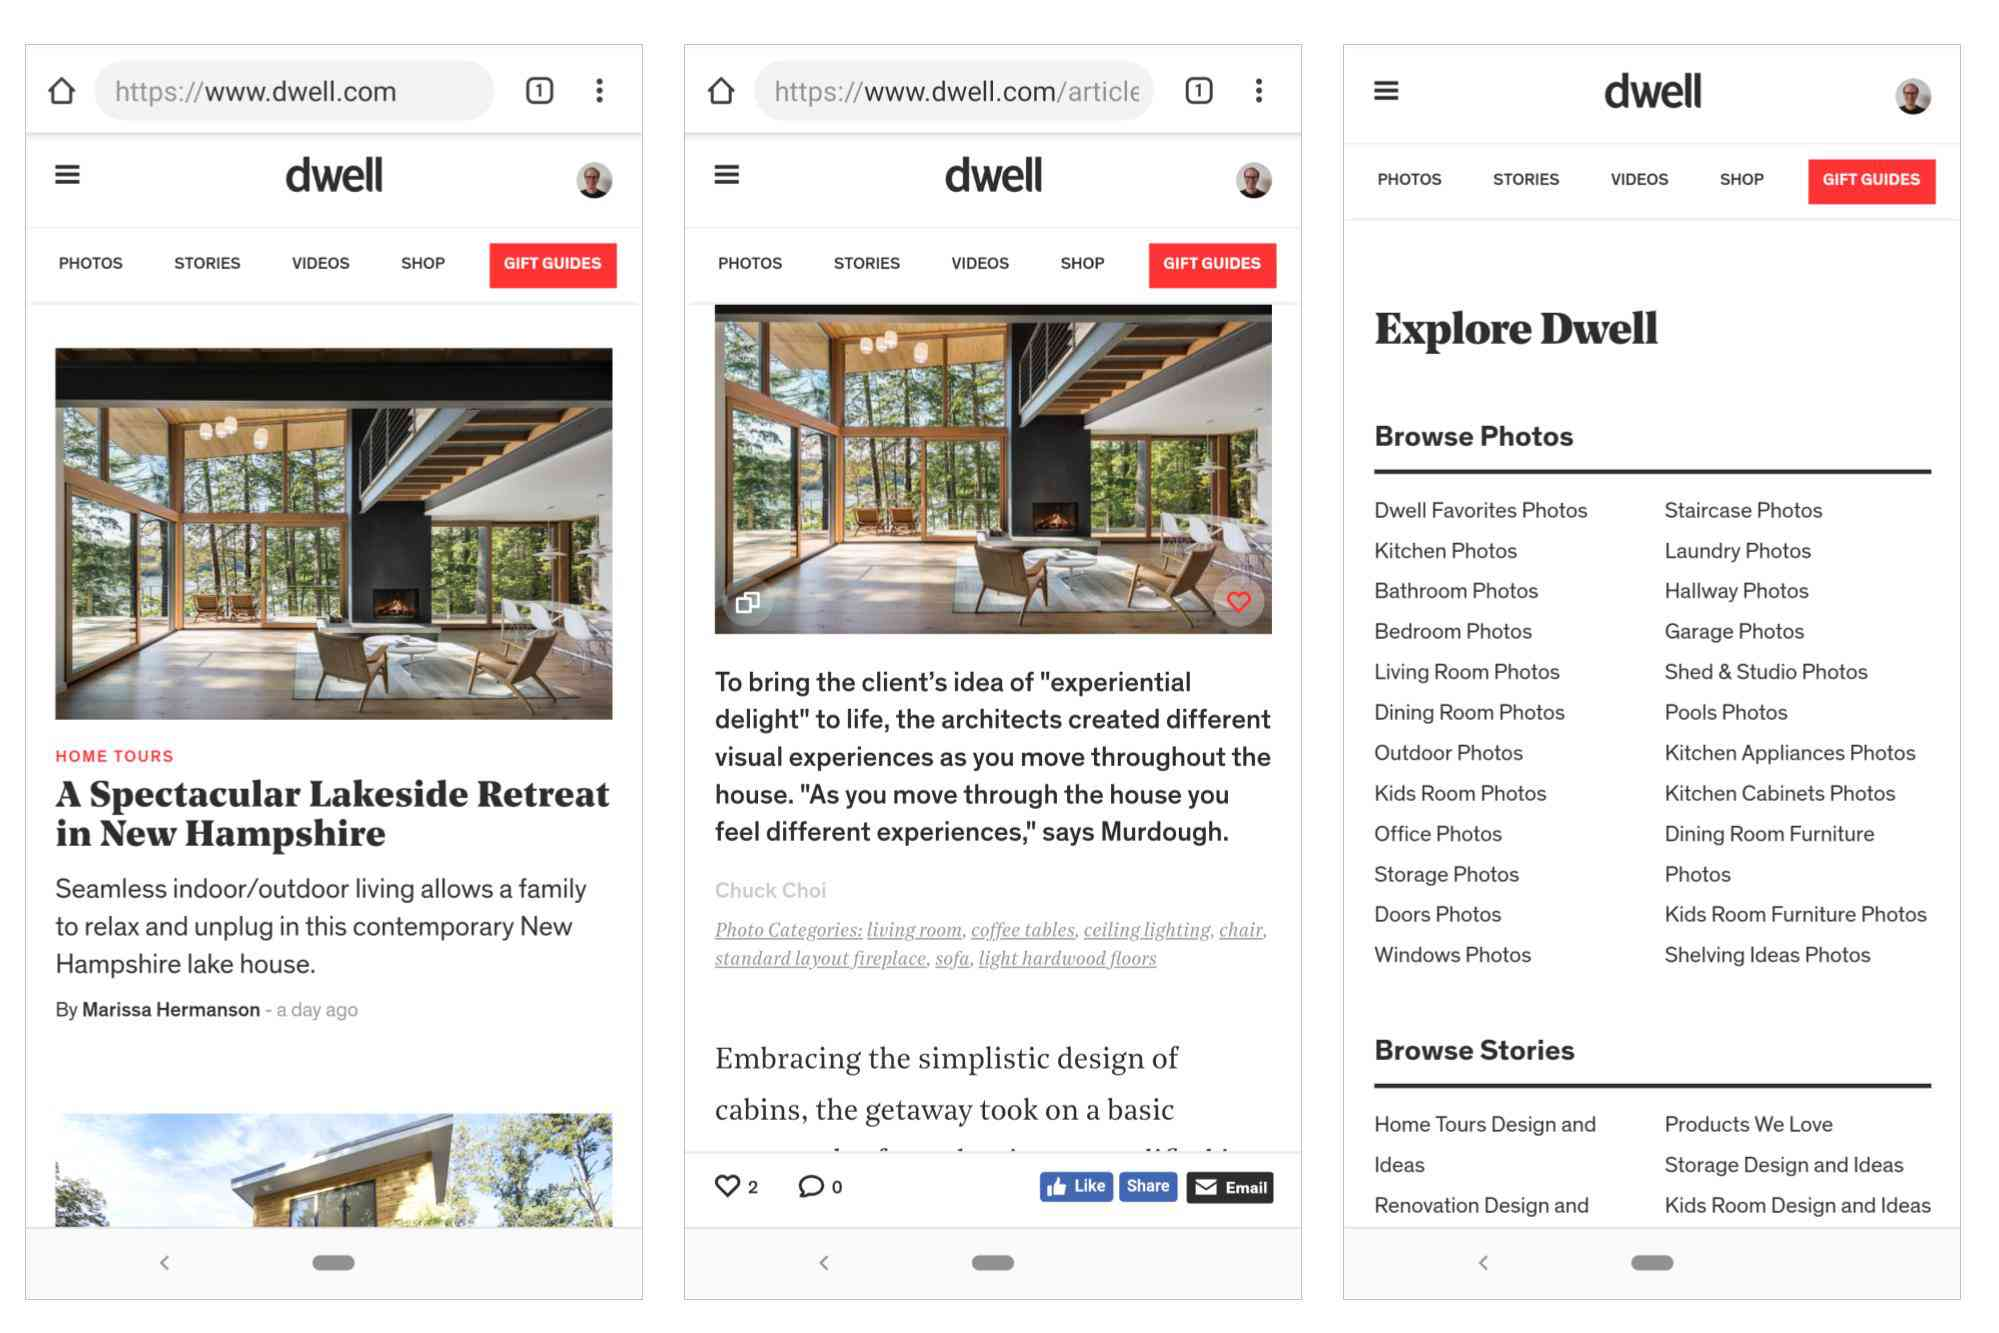 3 screenshots: Dwell.com home screen; Article photo, with heart (favorite) selected; Explore dwell, showing direct links to categories of content